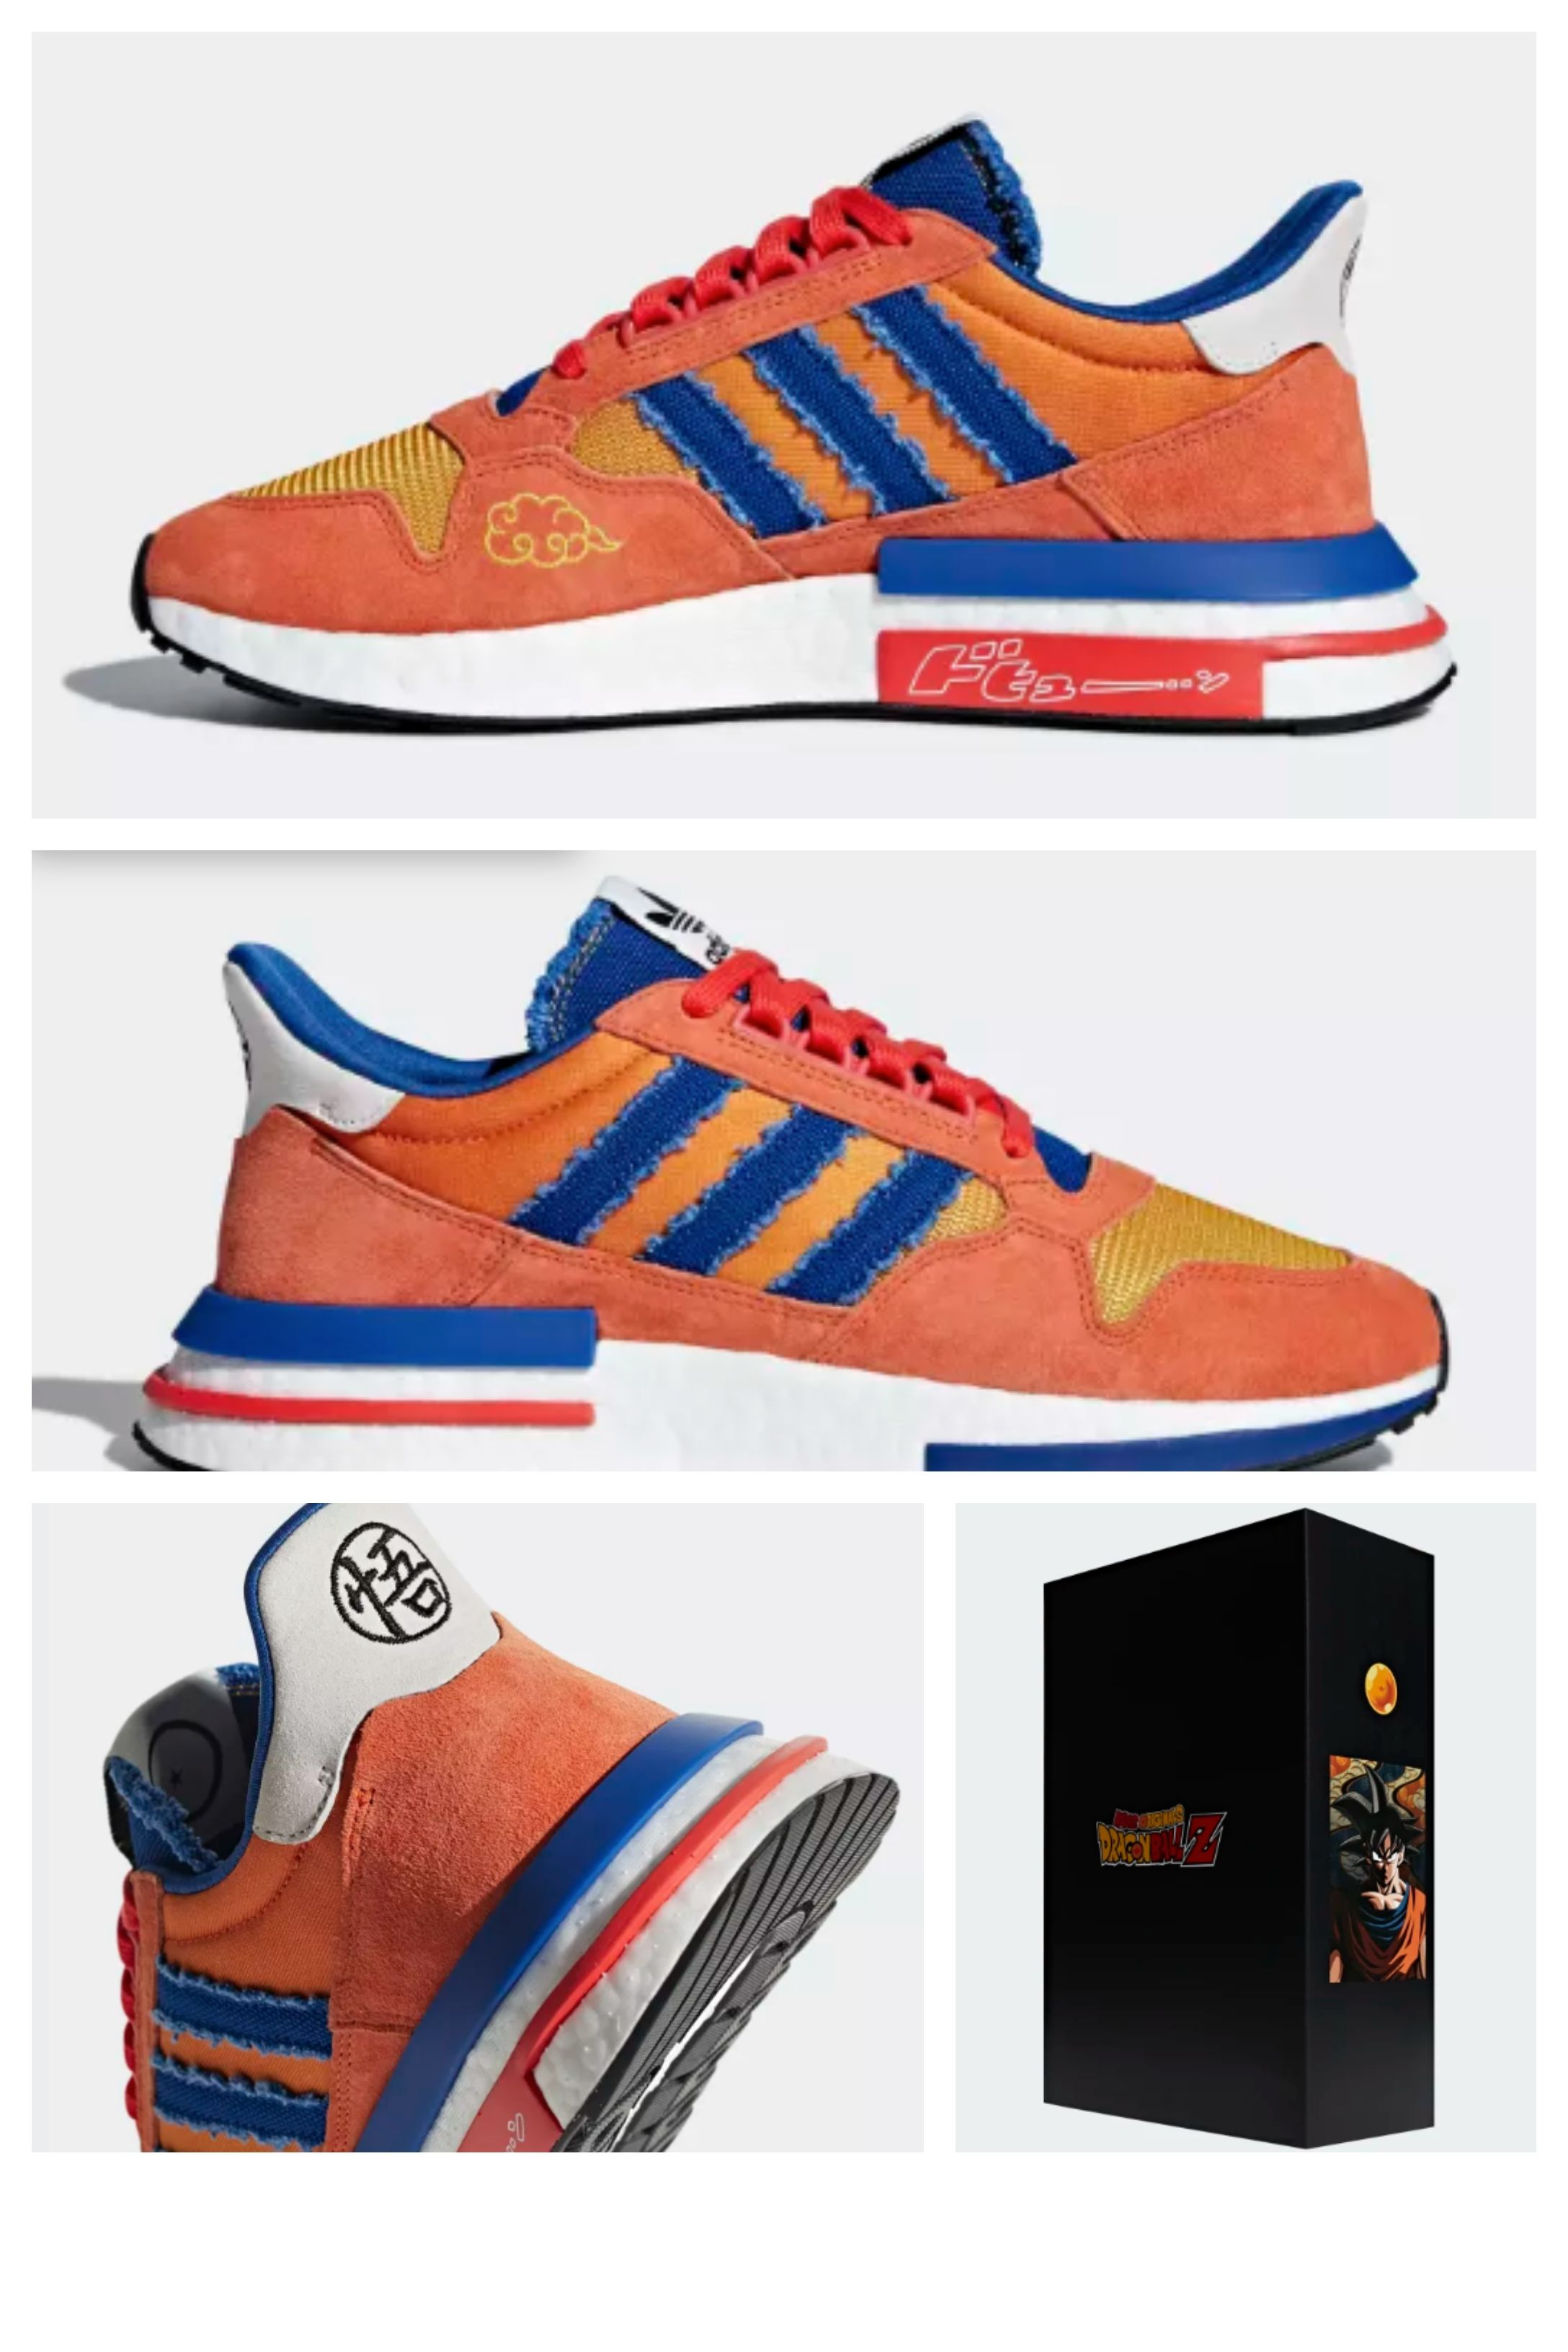 ae3b8c5dce9 Dragonball Z ZX 500 RM Shoes in 2019